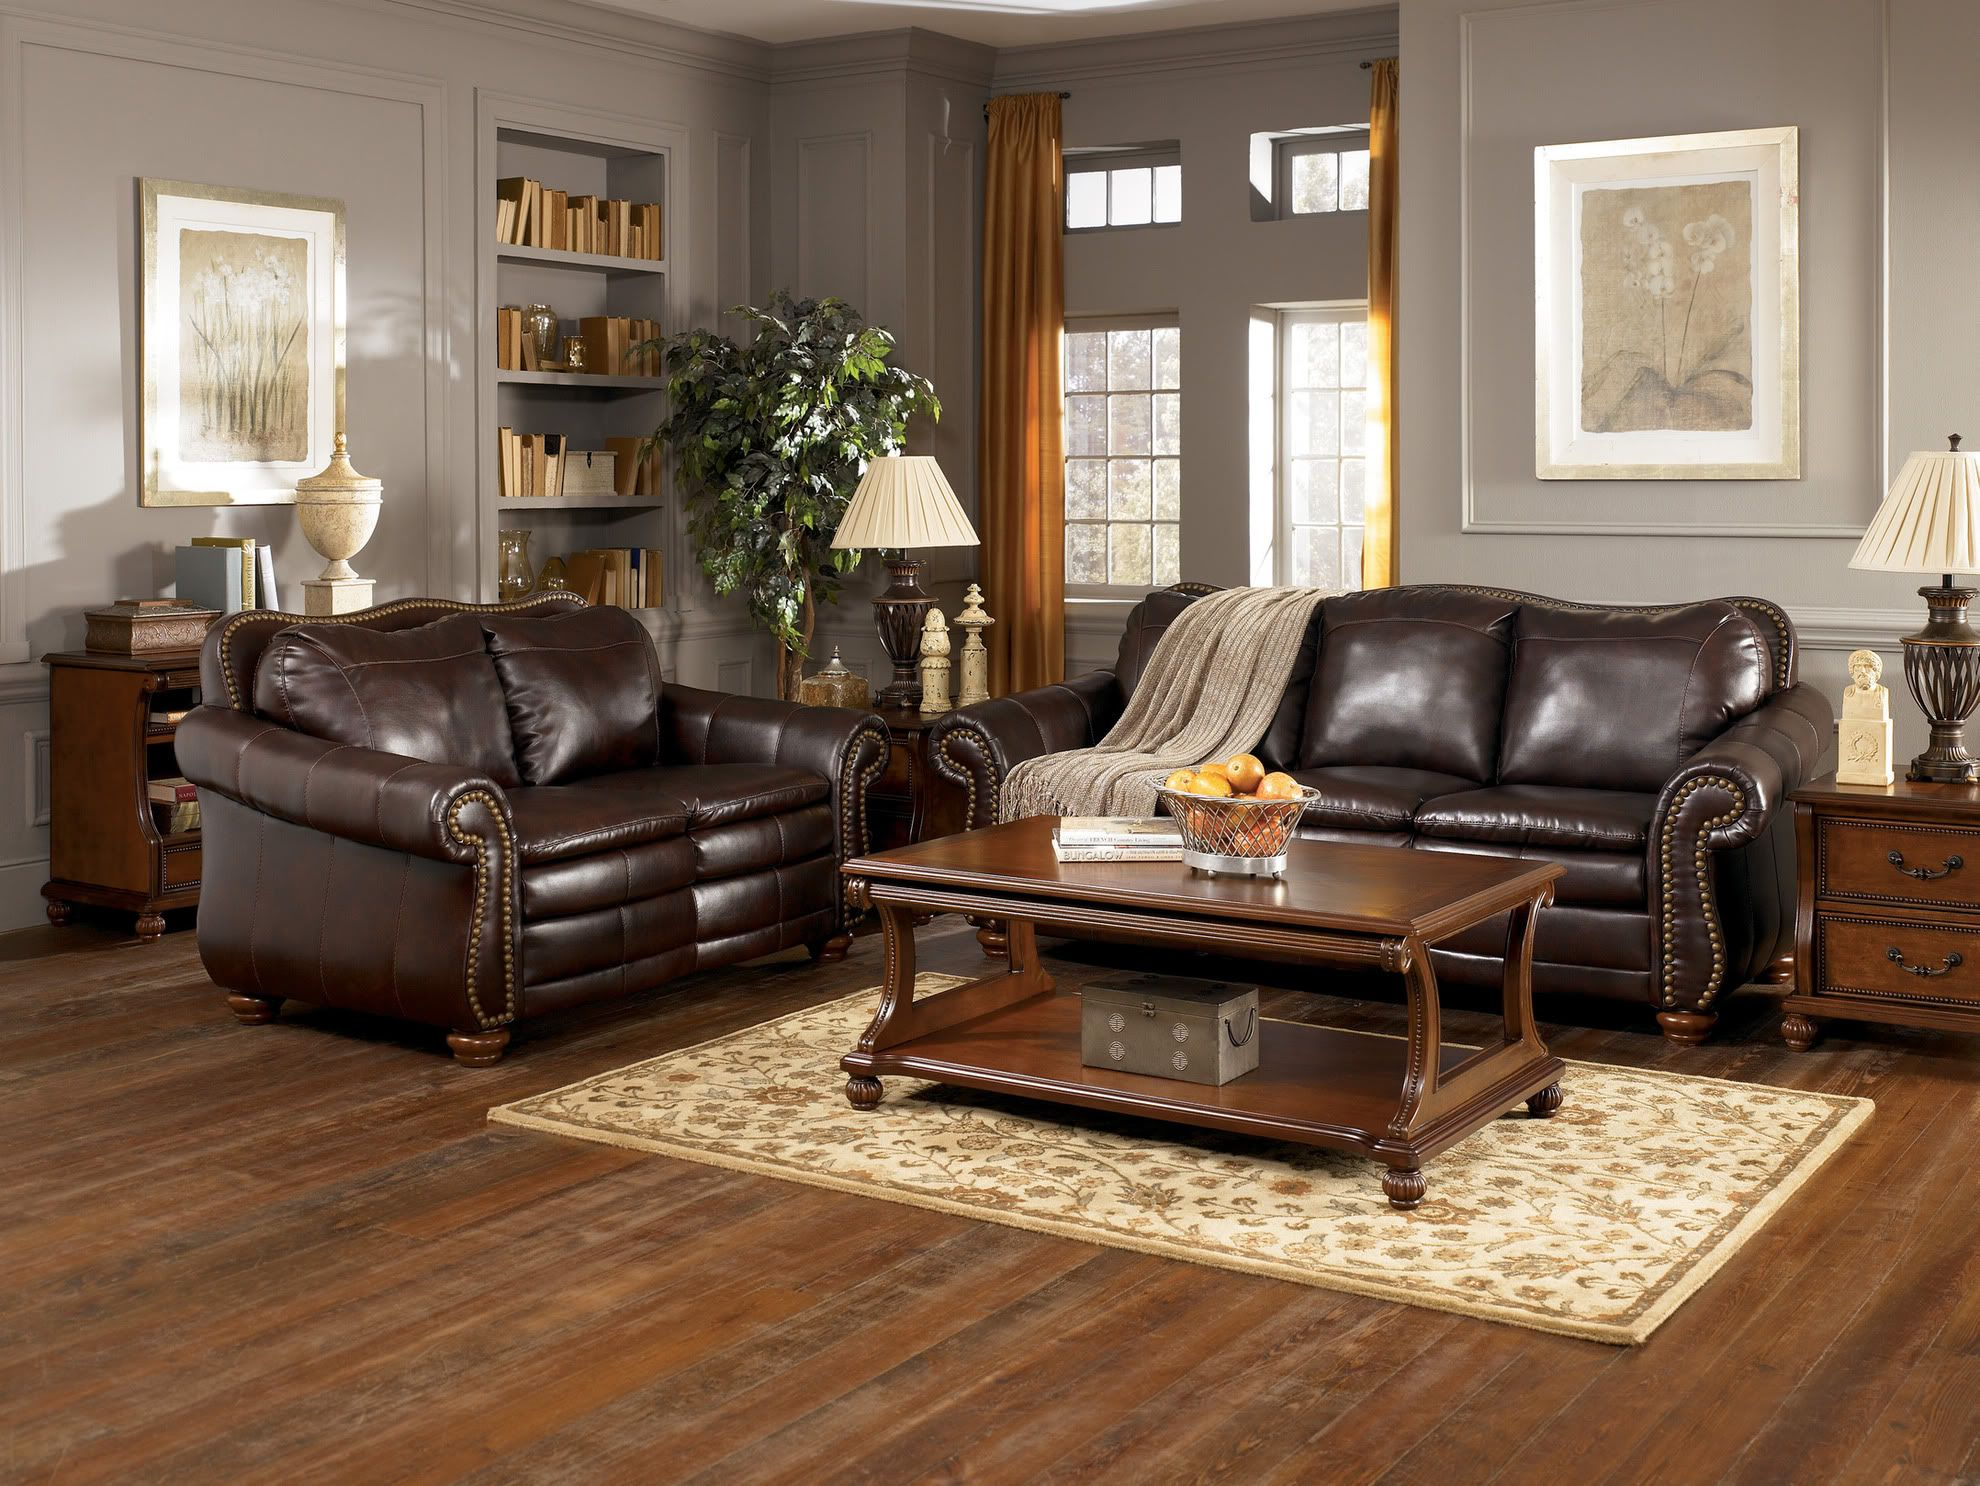 Fetching grey living room with brown furniture design for Gray living room furniture ideas